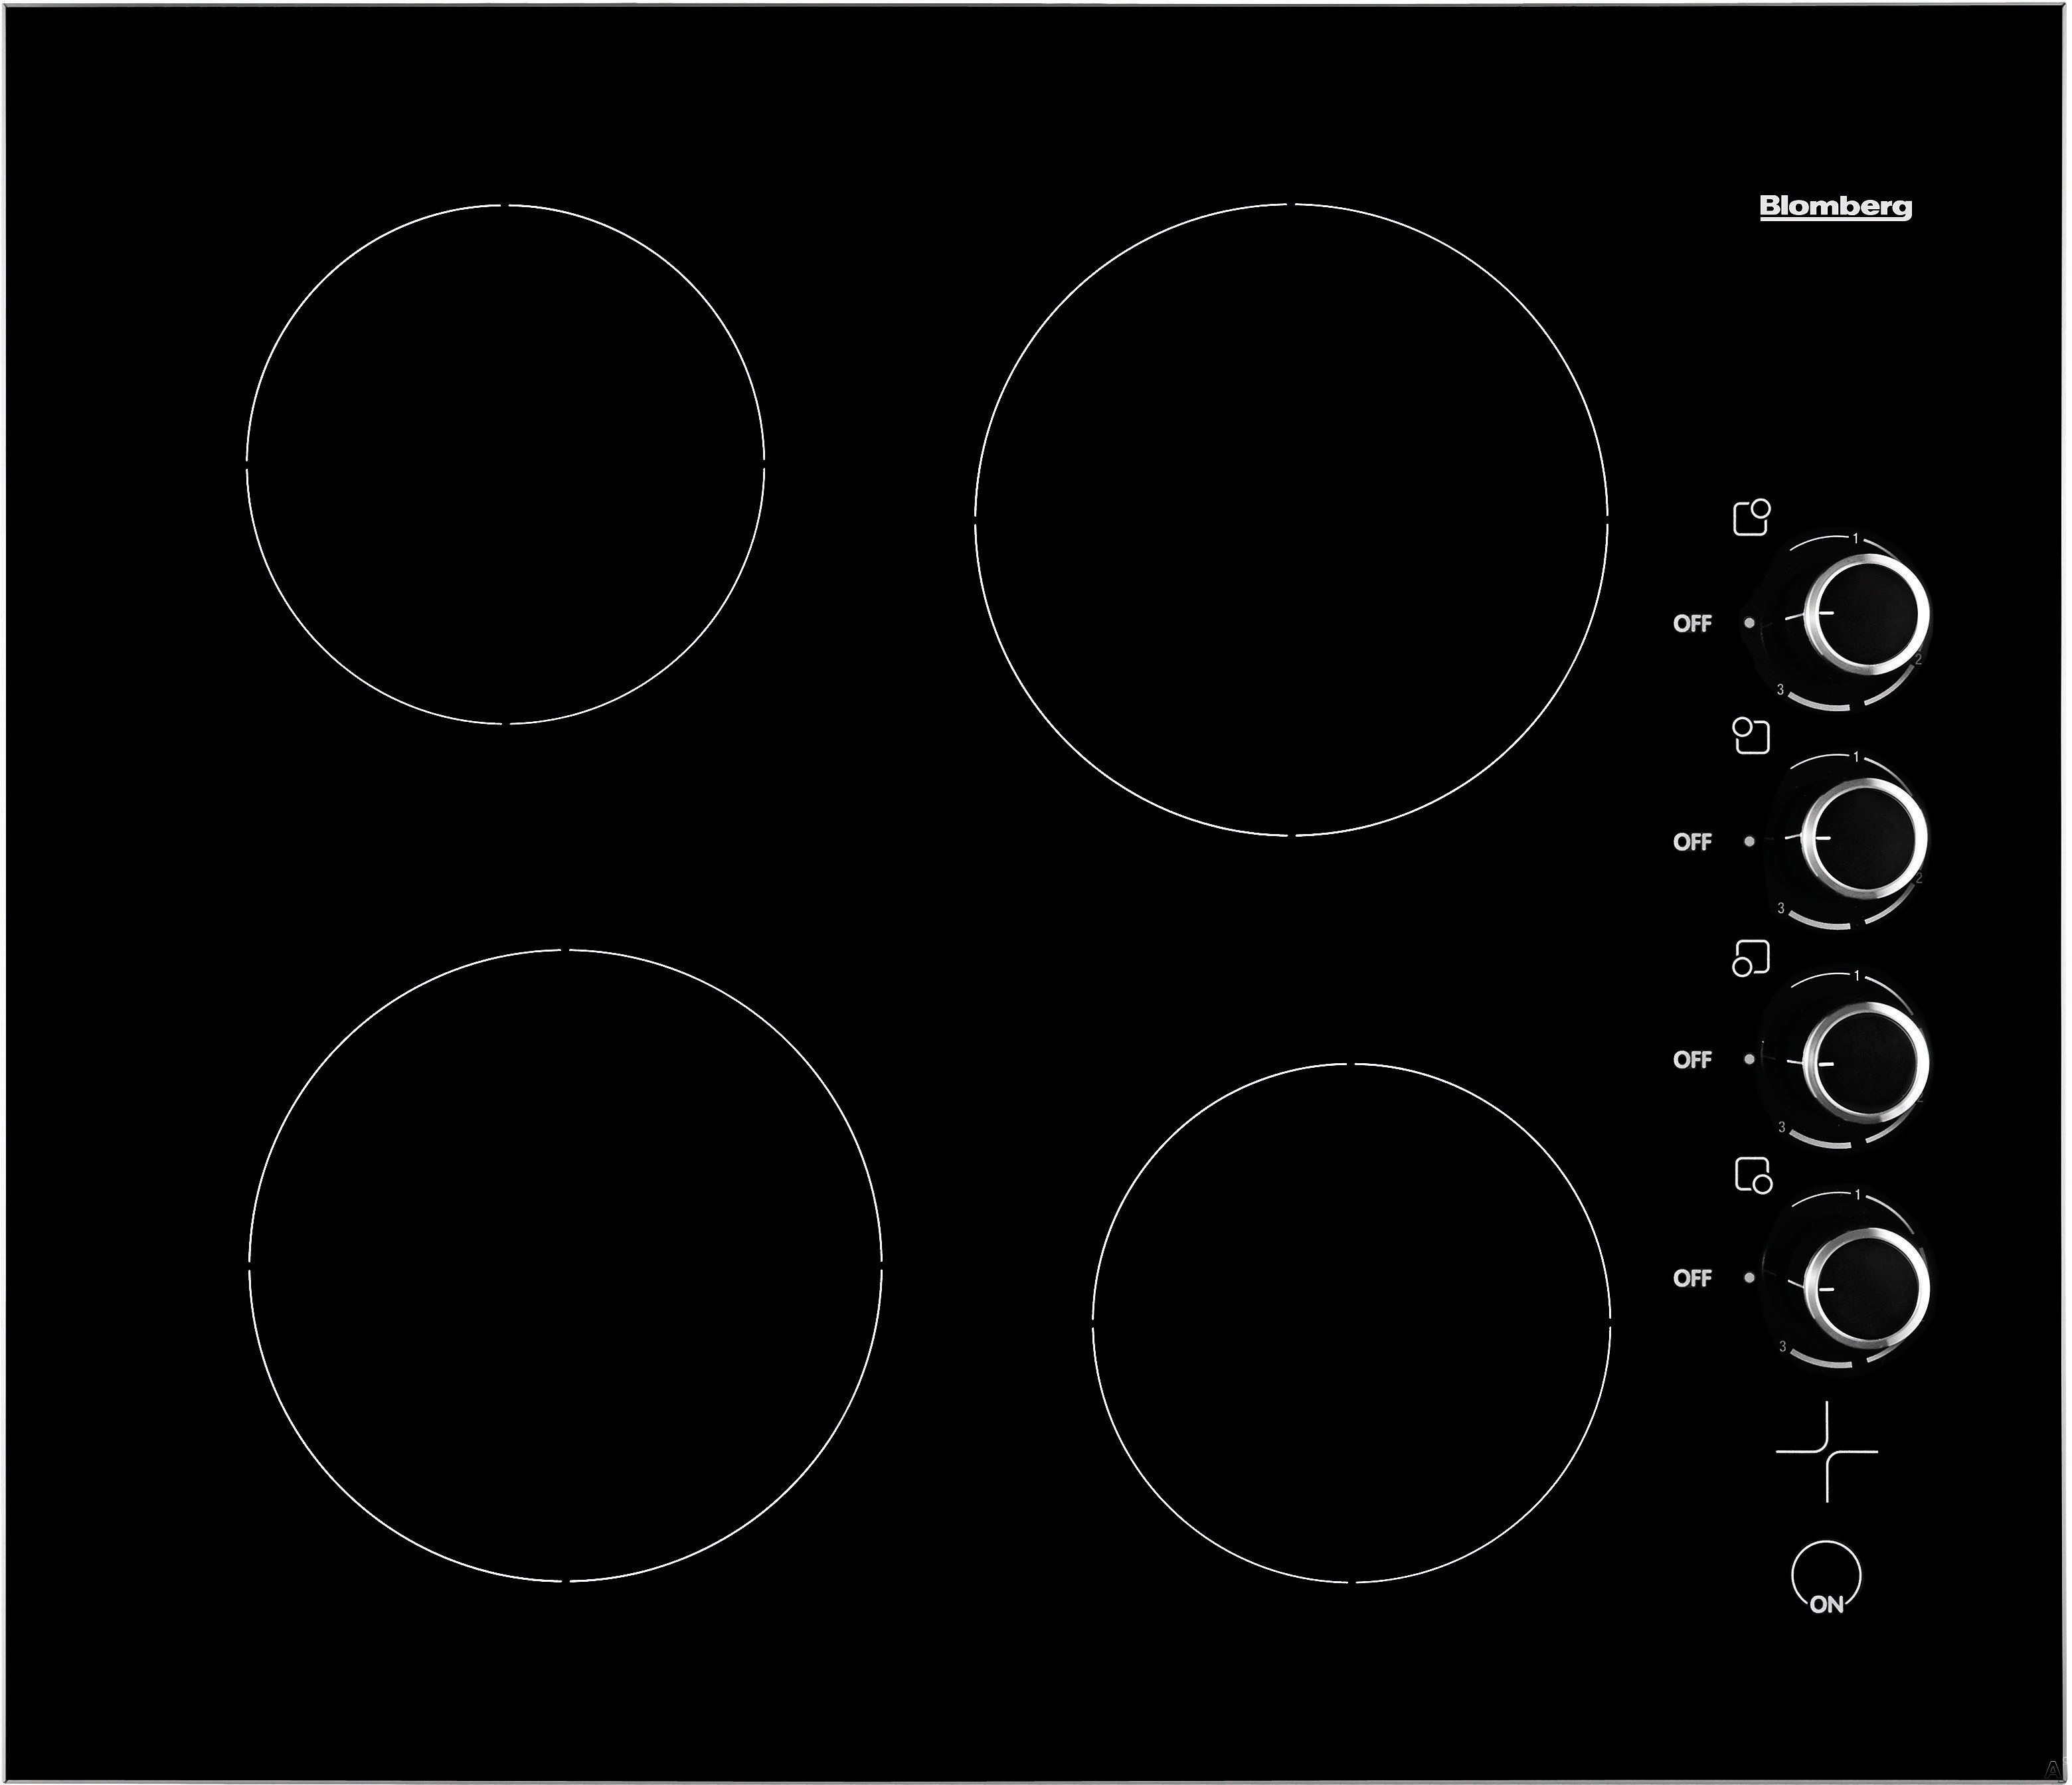 Blomberg CTE24402 24 Inch Smoothtop Electric Cooktop with 4 Vitroceramic Zones, 6 Cooking Levels Per Zone, Individual Residual-Heat Indicators, Hot-Surface Indicators and Knob Controls